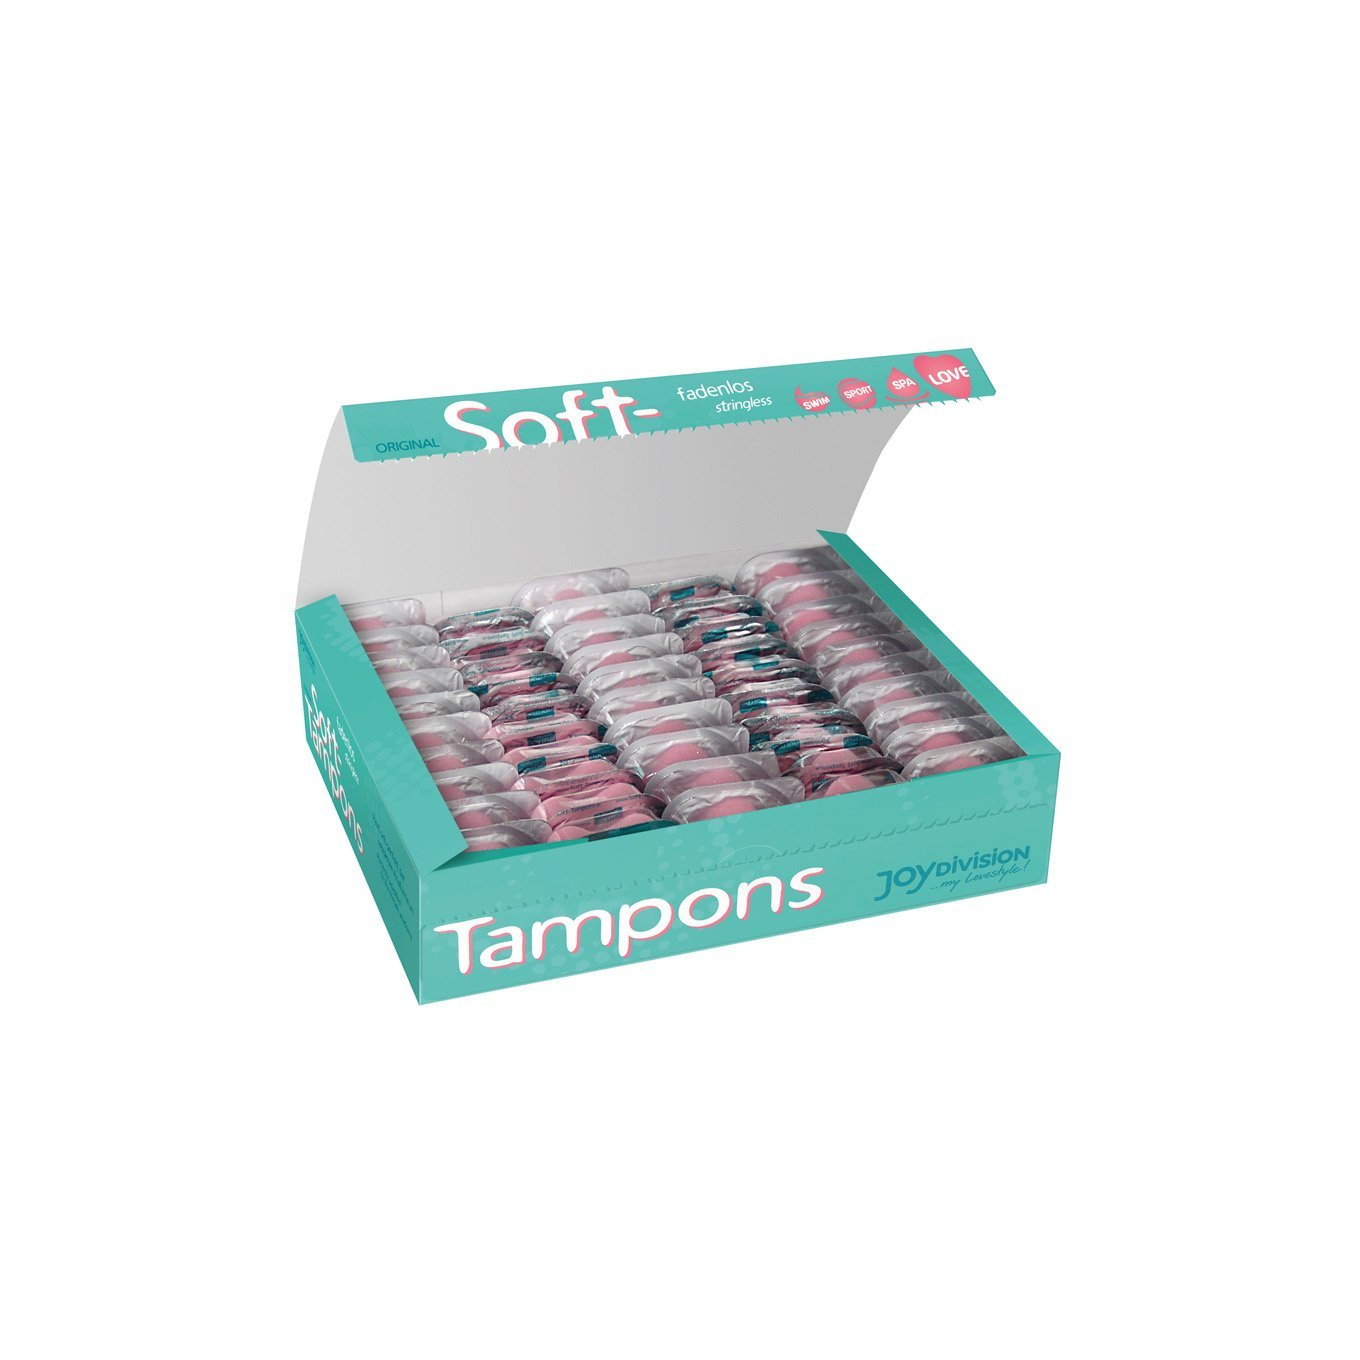 Joy Division - Soft Tampons Mini Pack of 50 | CherryAffairs Singapore